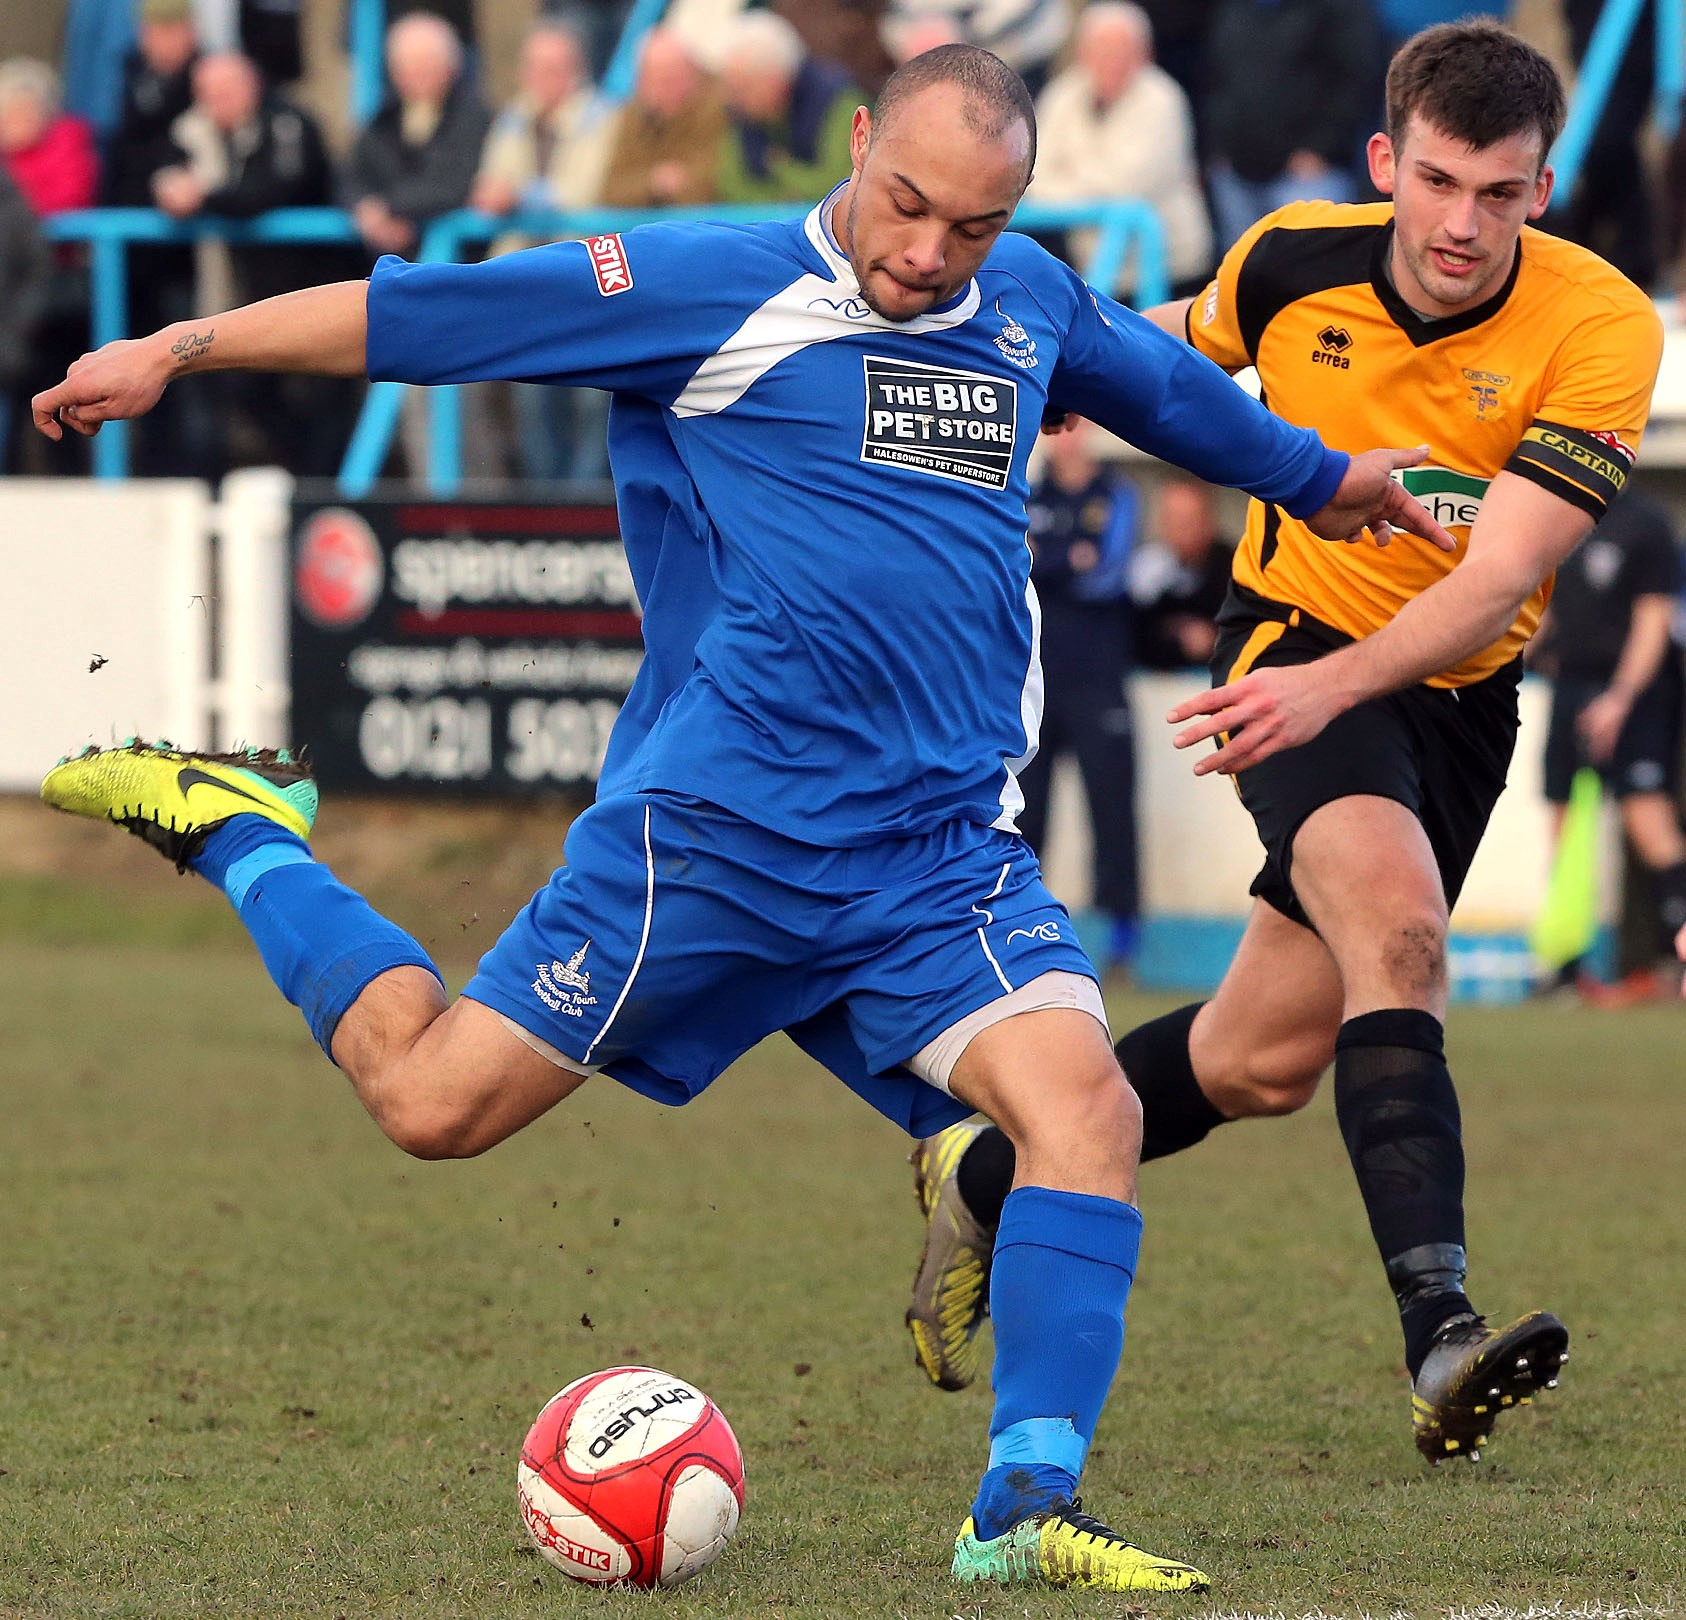 Halesowen's Aaron Forde in action against Leek. Picture: JON HIPKISS